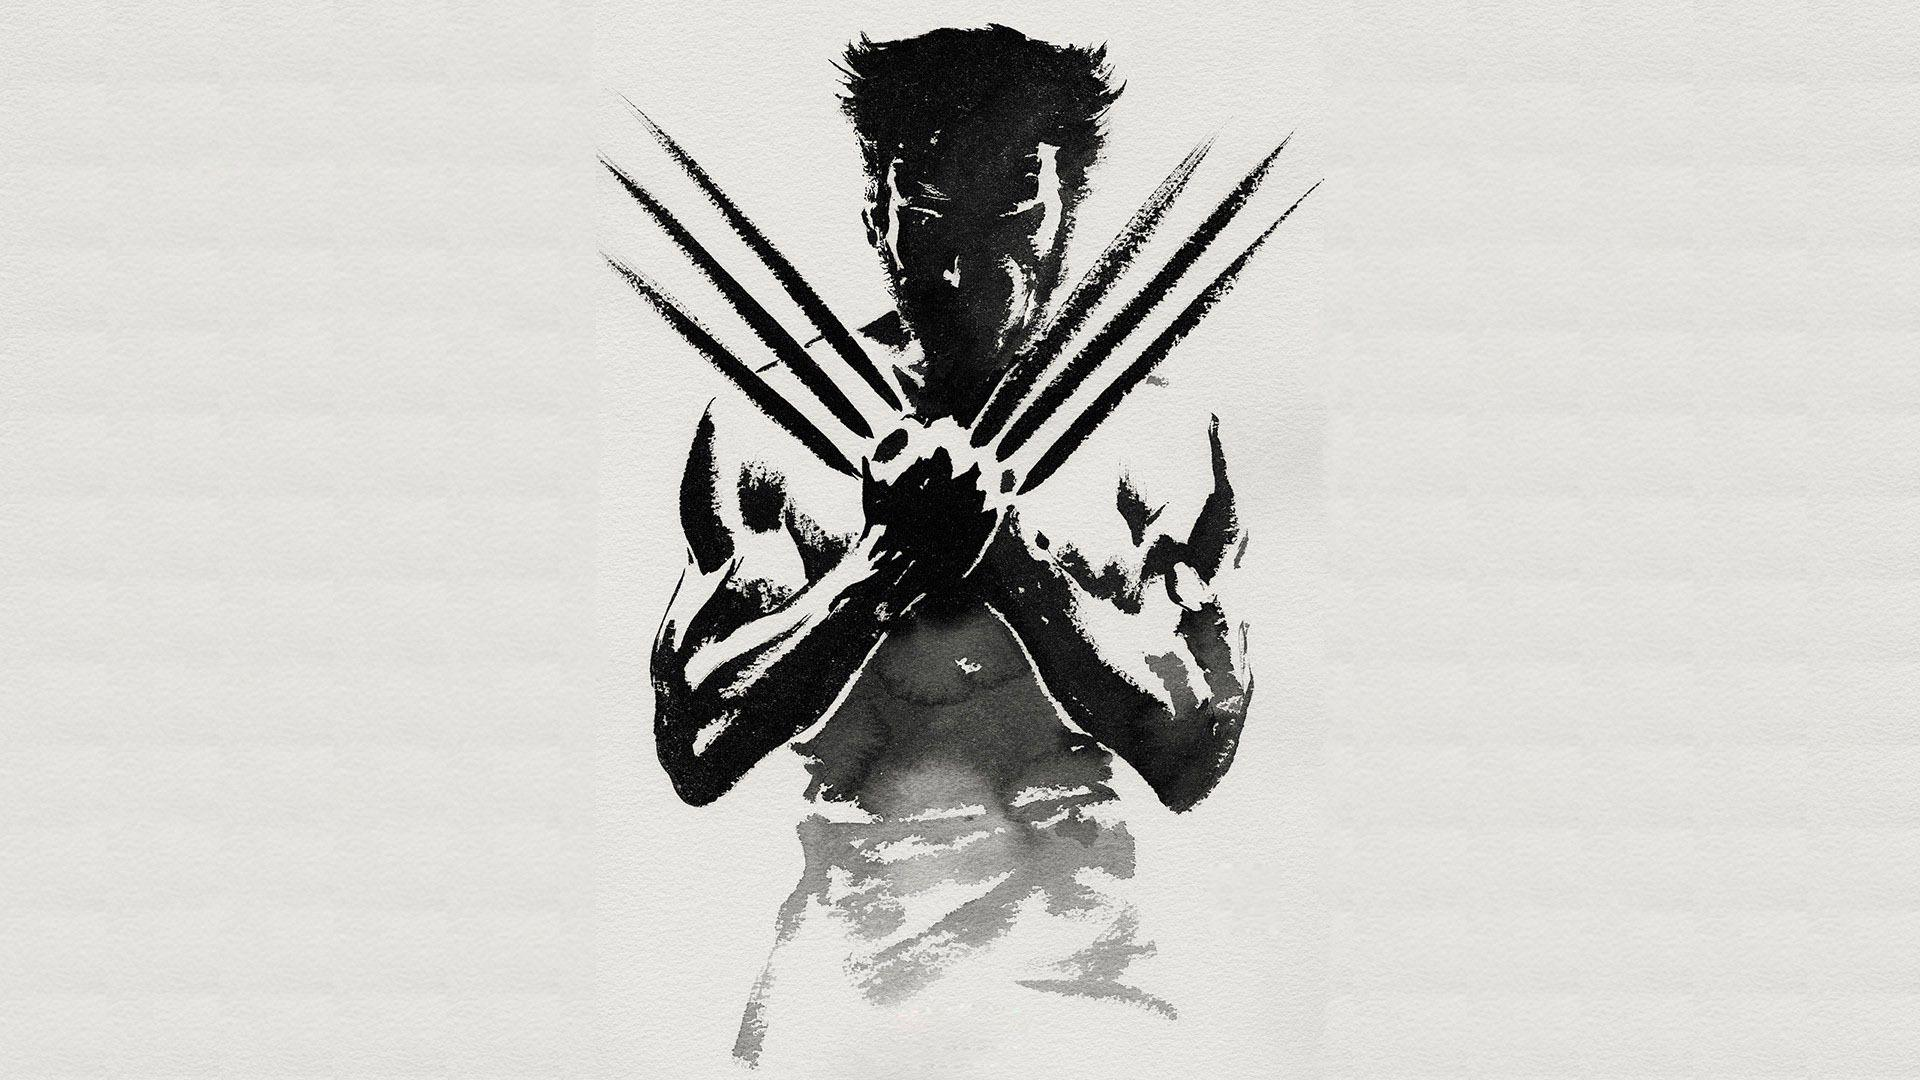 The wolverine hd wallpapers wallpaper cave wolverine hd wallpapers 24 voltagebd Images